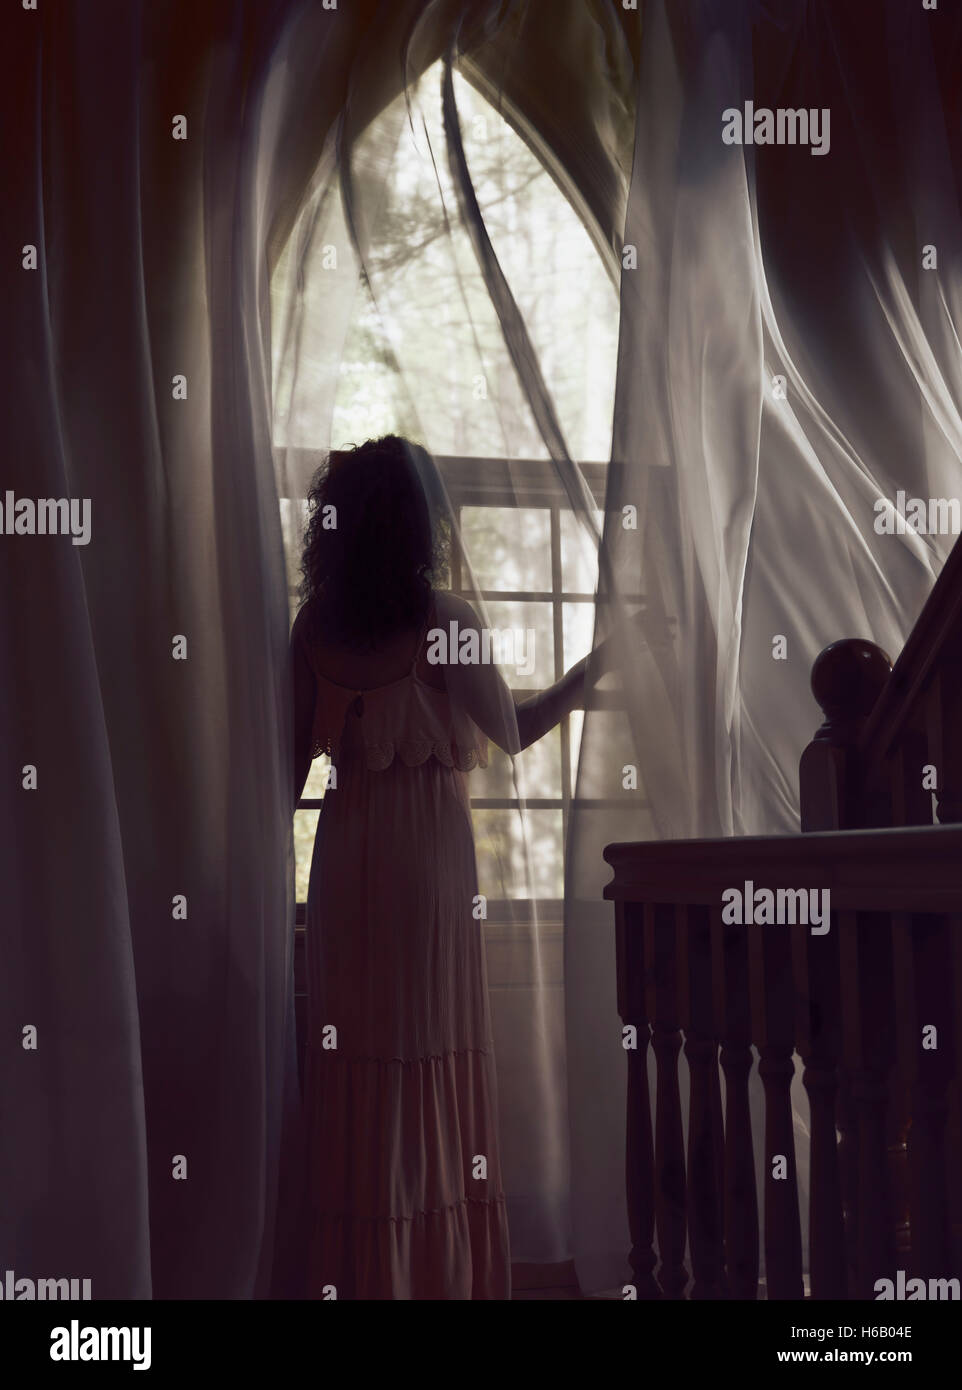 Woman in a long dress standing by a window with flying in the wind curtains in a dark house lit by dim sunlight Stock Photo